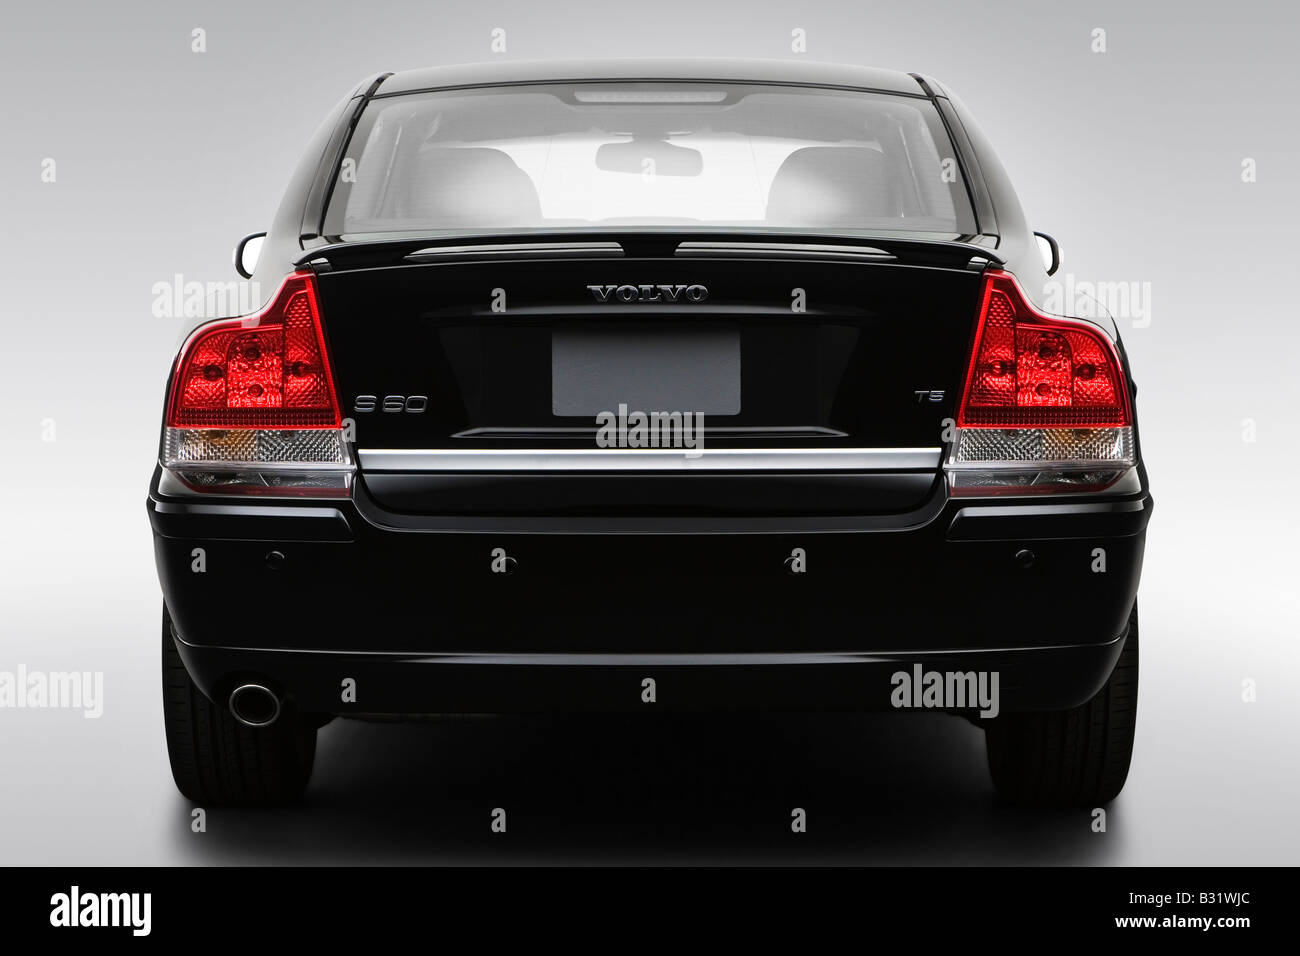 2008 Volvo S60 T5 A Sr In Black Low Wide Rear Stock Photo Alamy